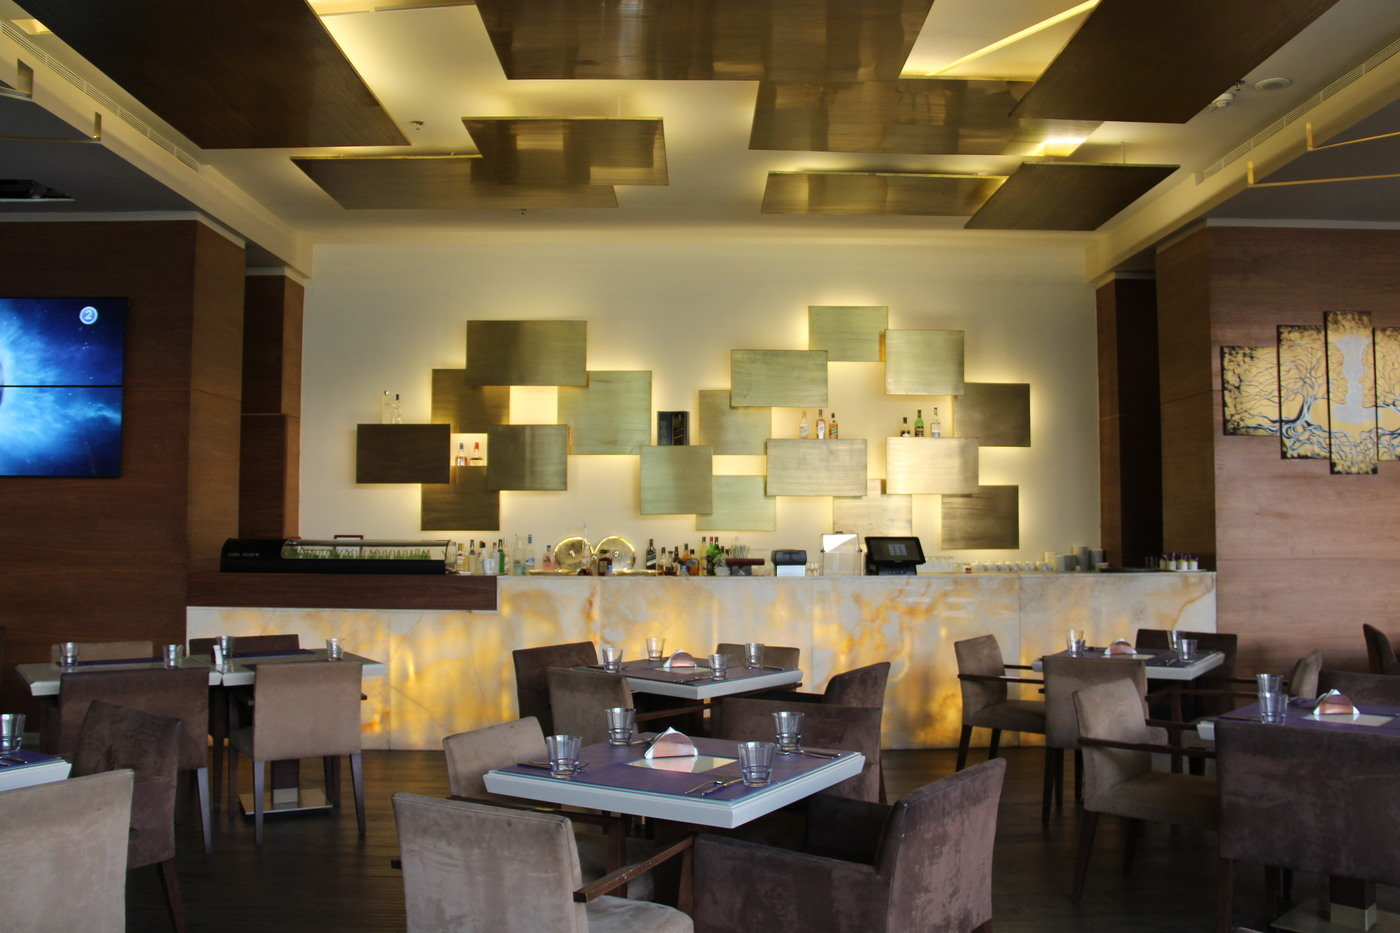 The Restaurant Lounge Top Best Architecture Interior Design Dubai By George Kakos At Coroflot Com